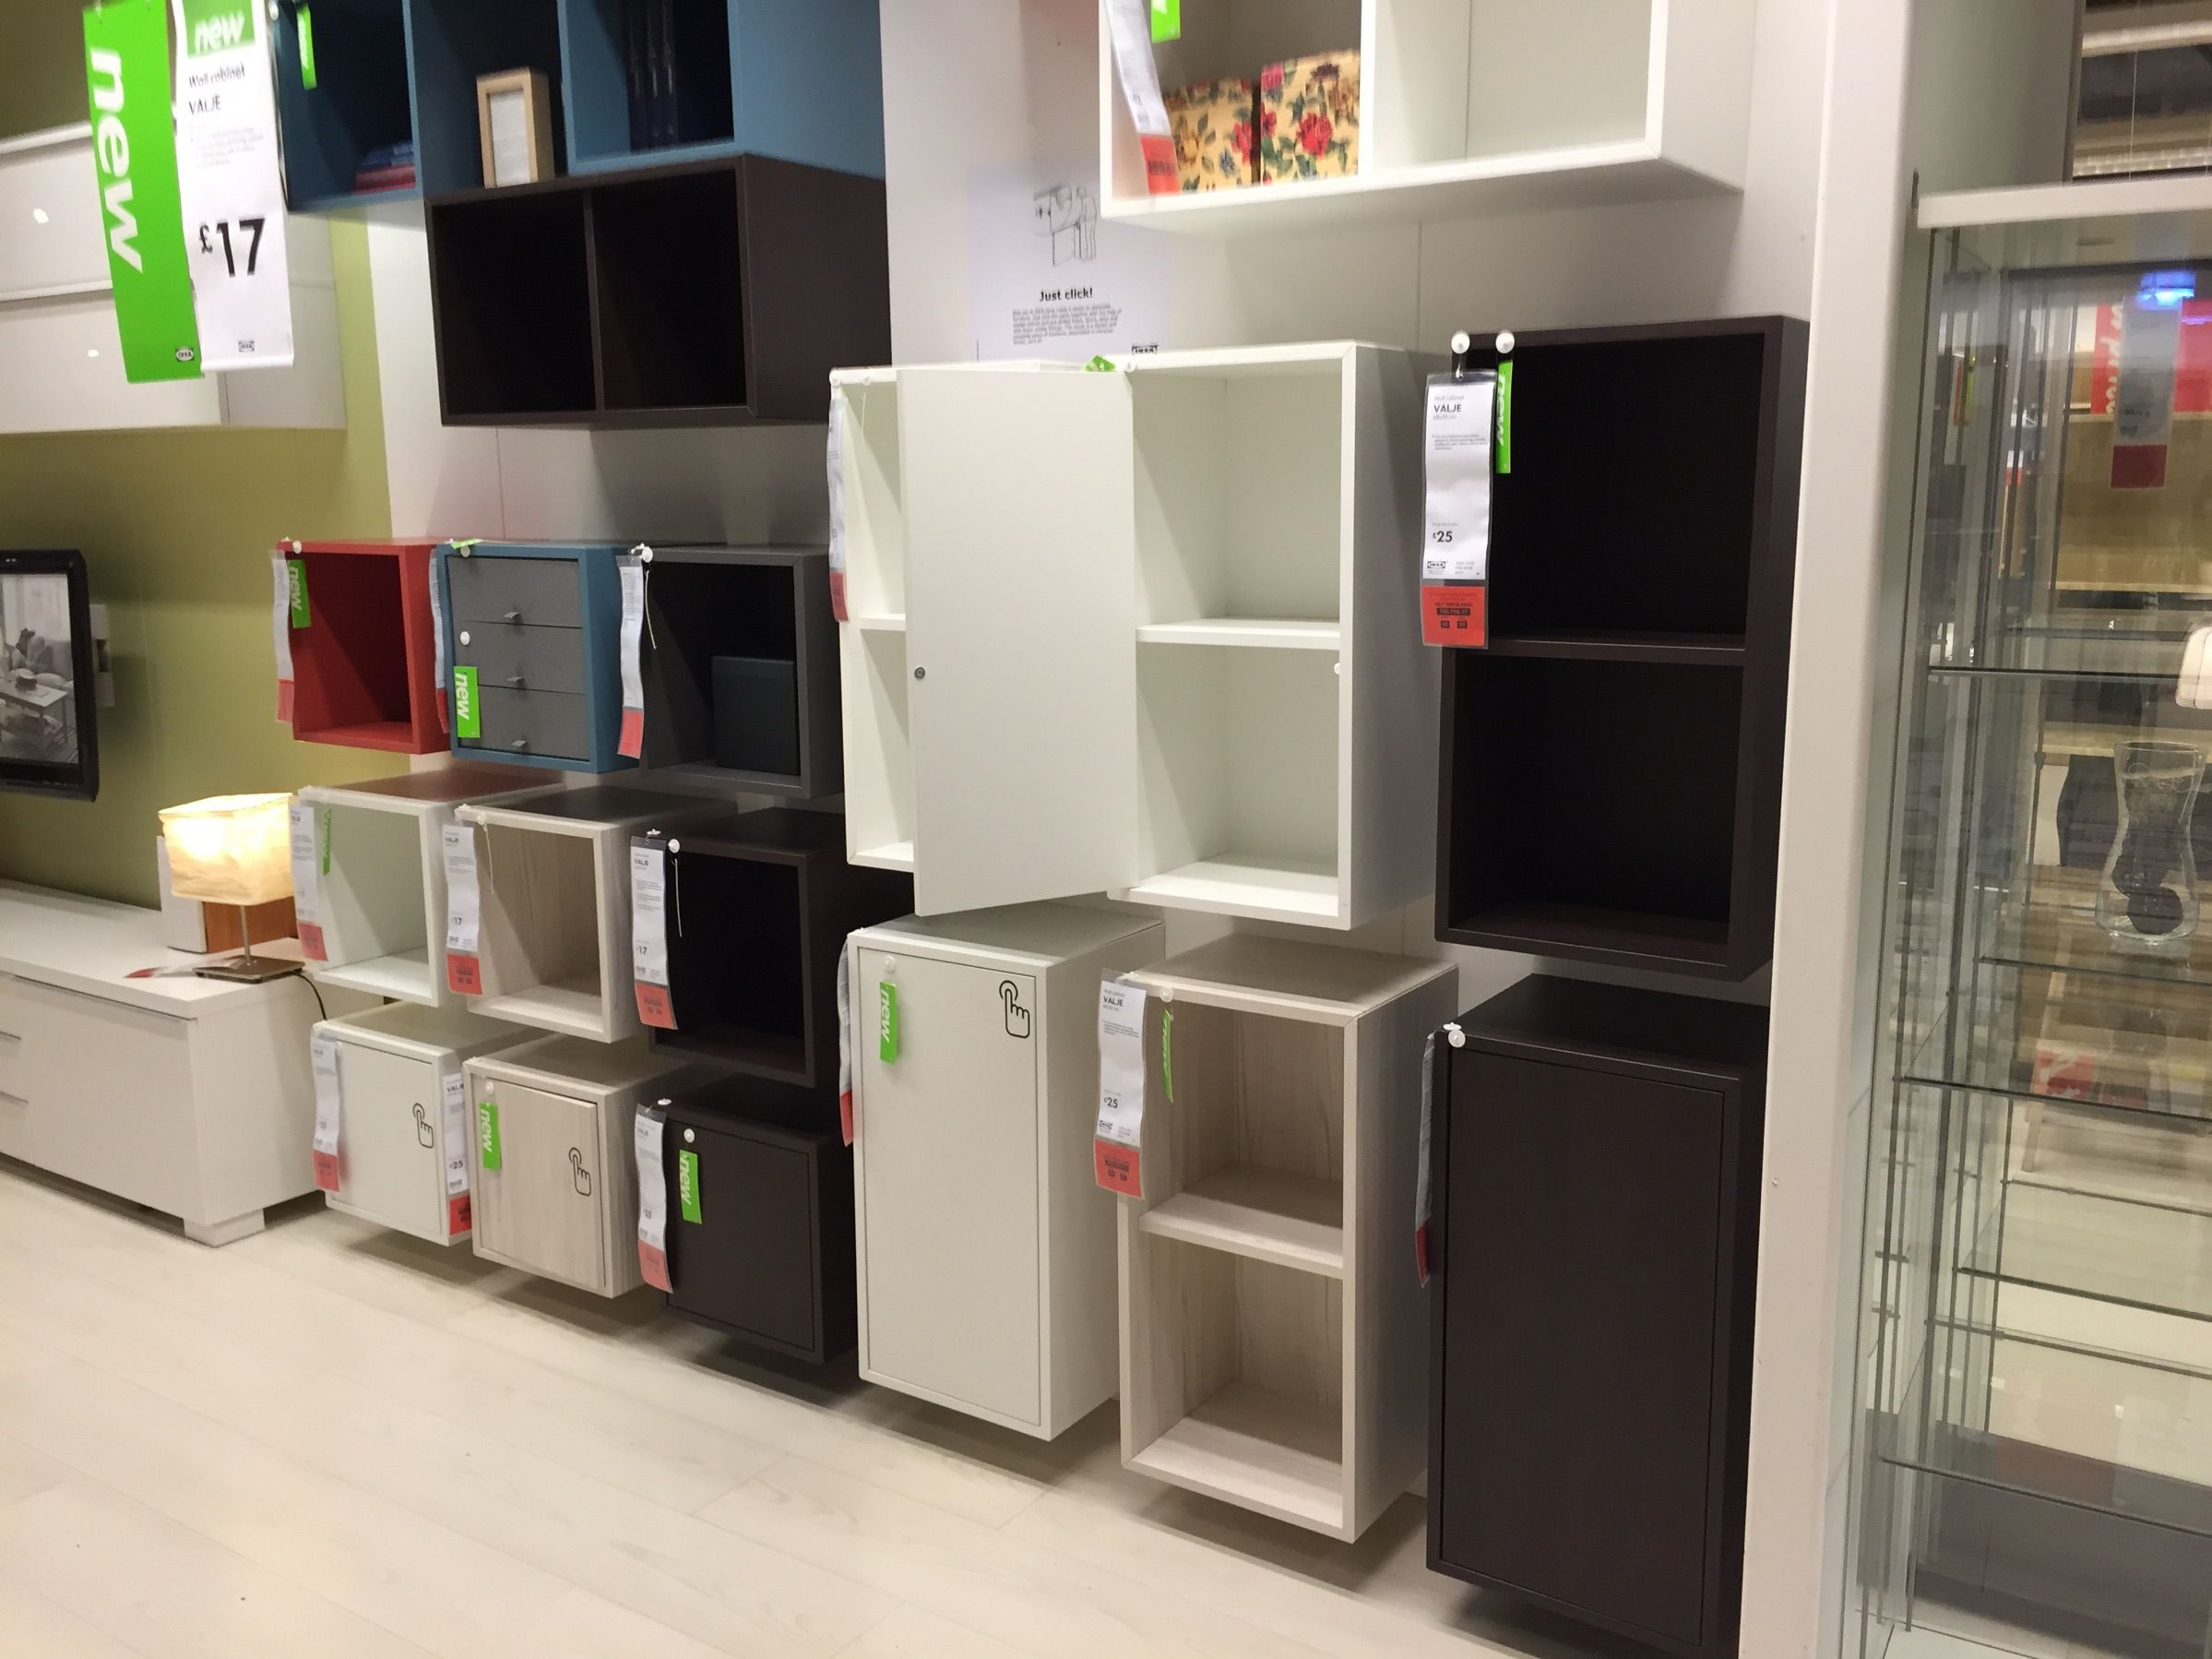 Ikea Valje Wall Units. These are interesting. We could use them as ...